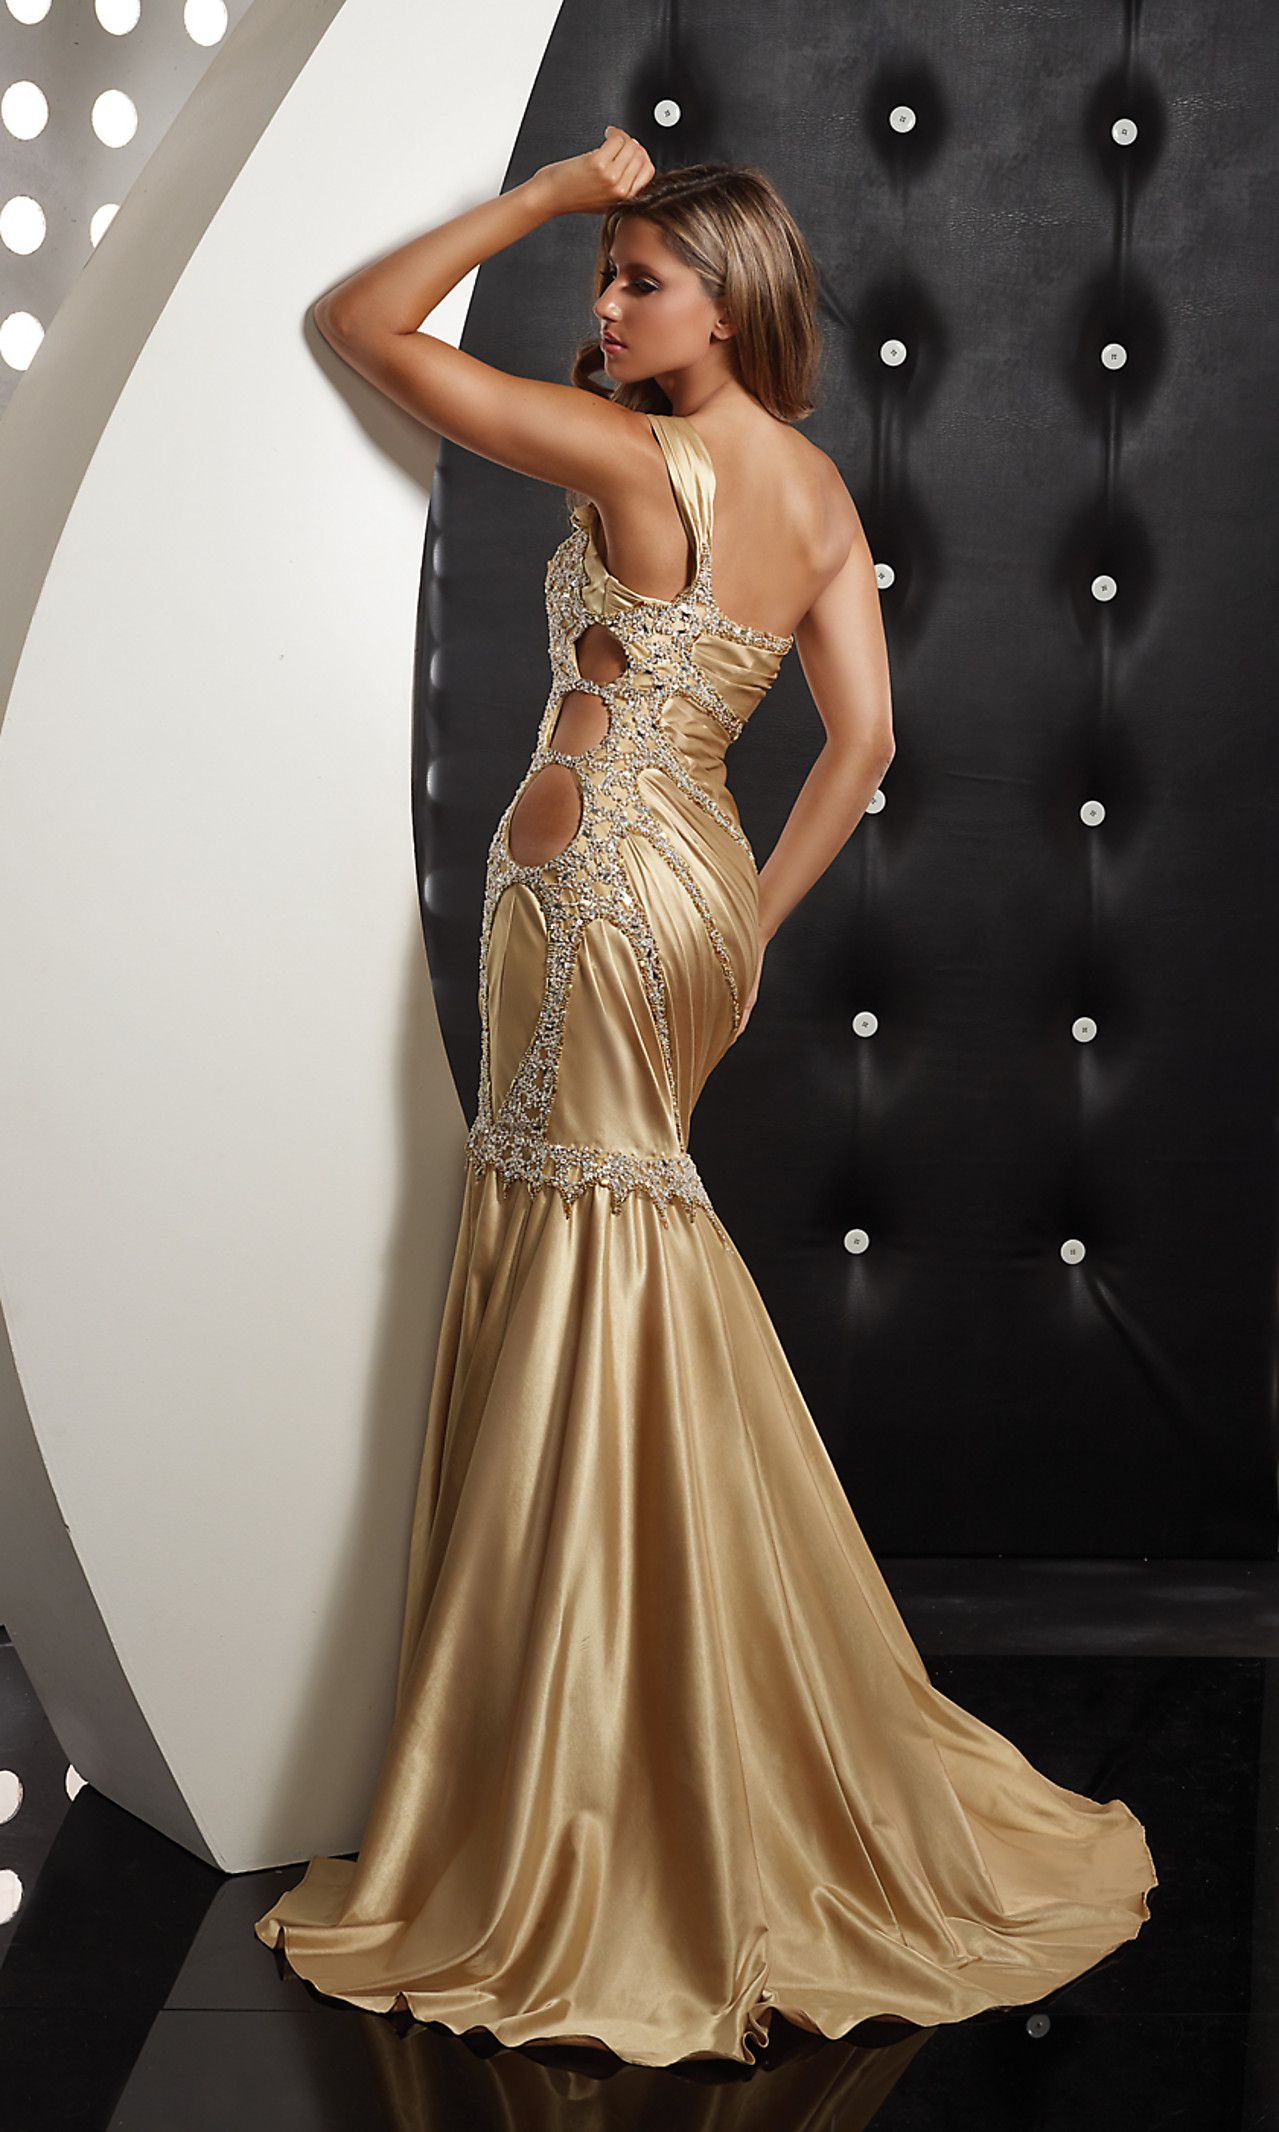 Sexy One Shoulder Gold Mermaid Dress by Jasz 4359 | Sequin Heaven ...